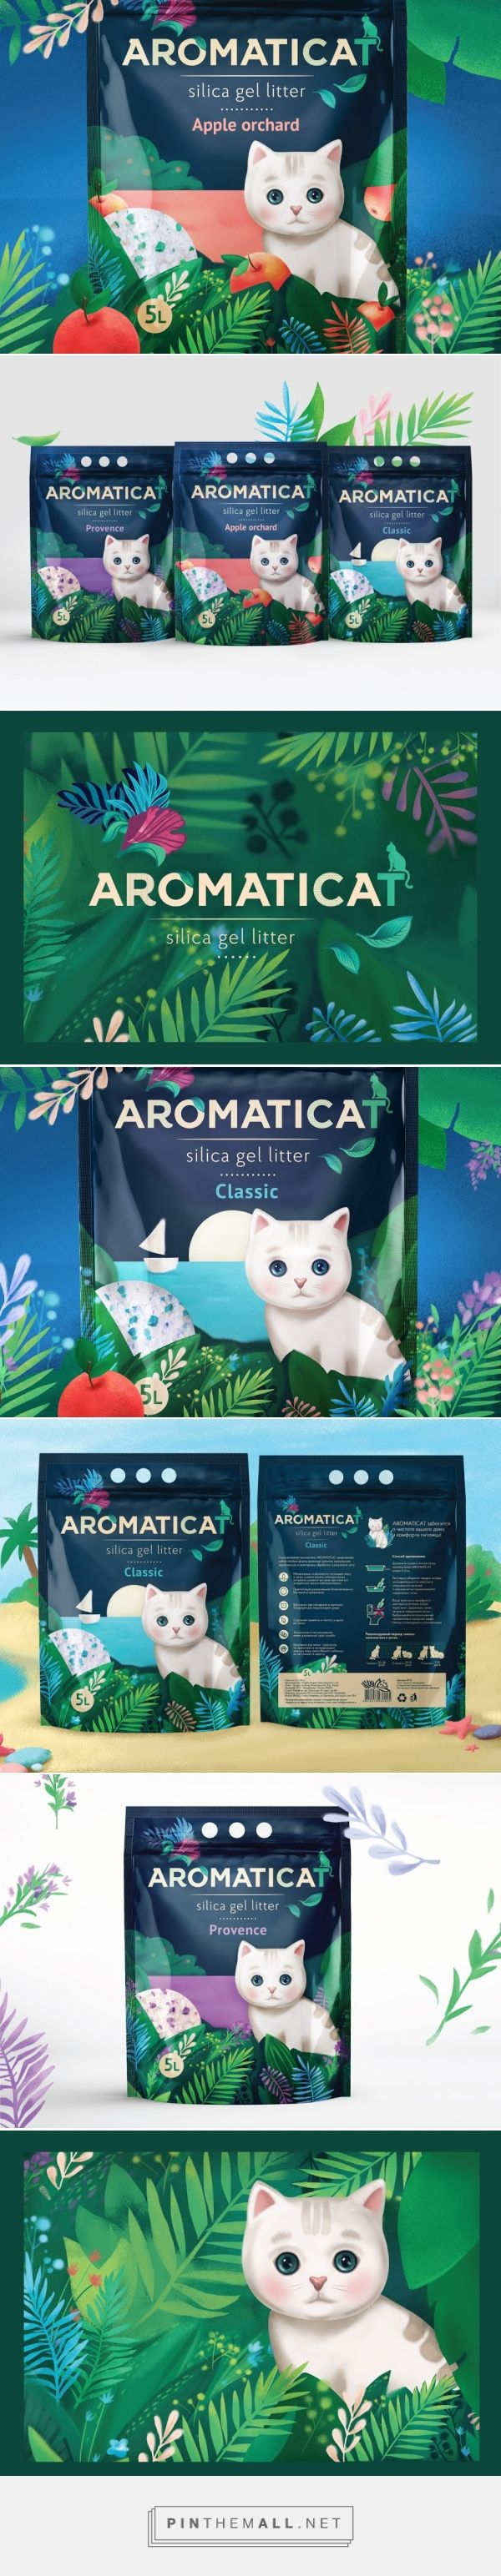 Cute Aromaticat cat litter packaging design by Dochery (Russia) - http://www.packagingoftheworld.com/2016/04/aromaticat.html